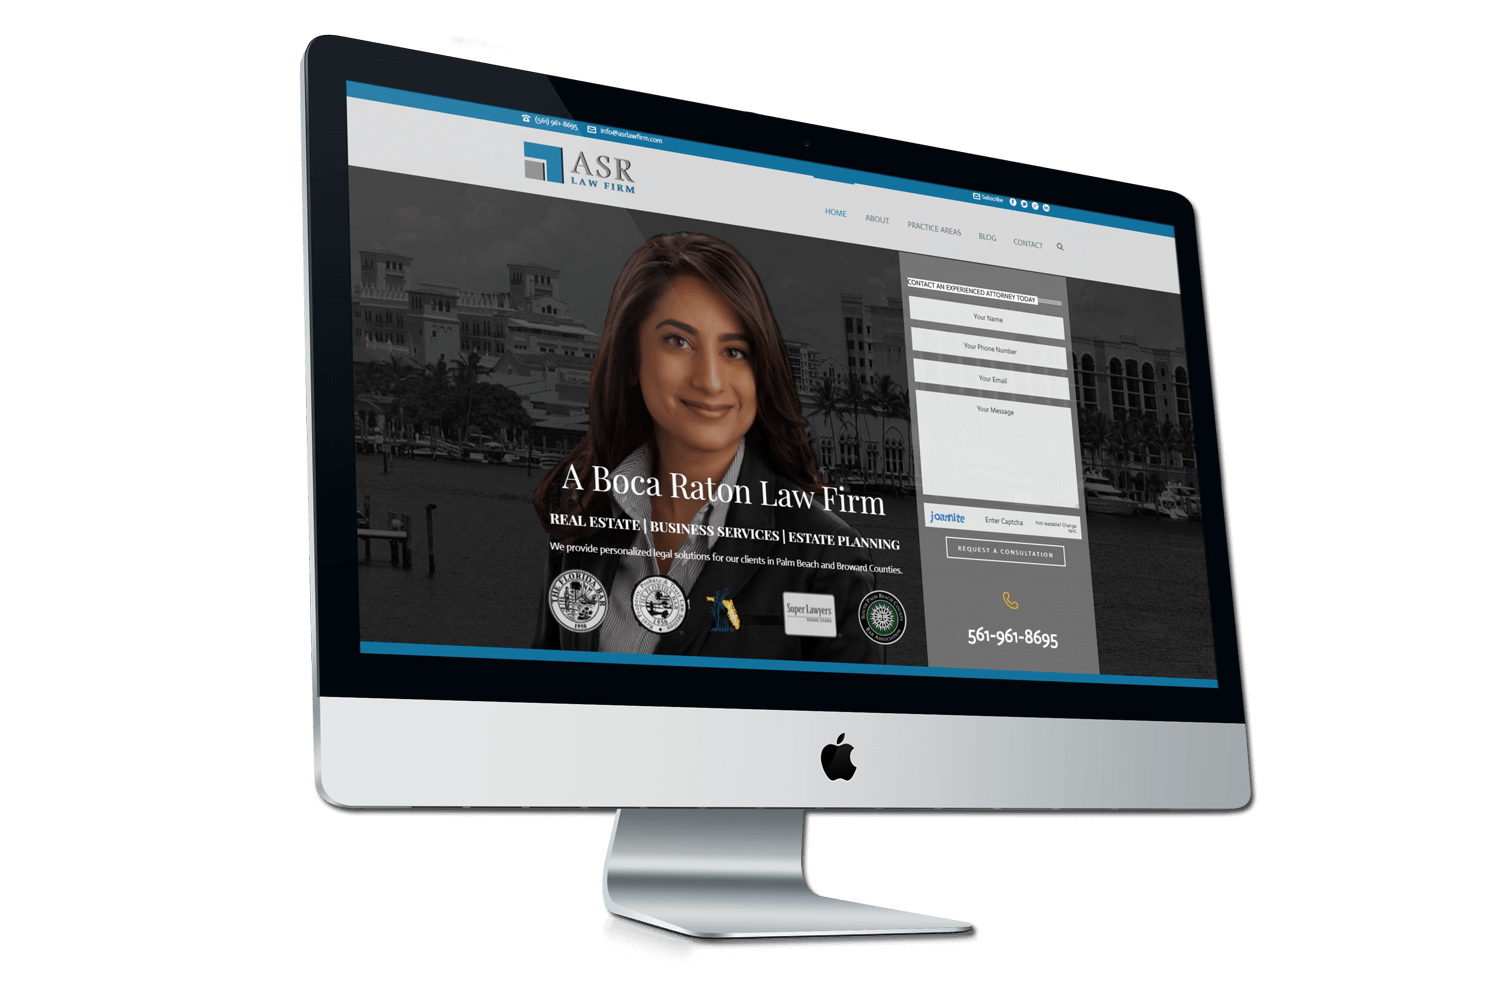 An image of the original ASR law Firm Website